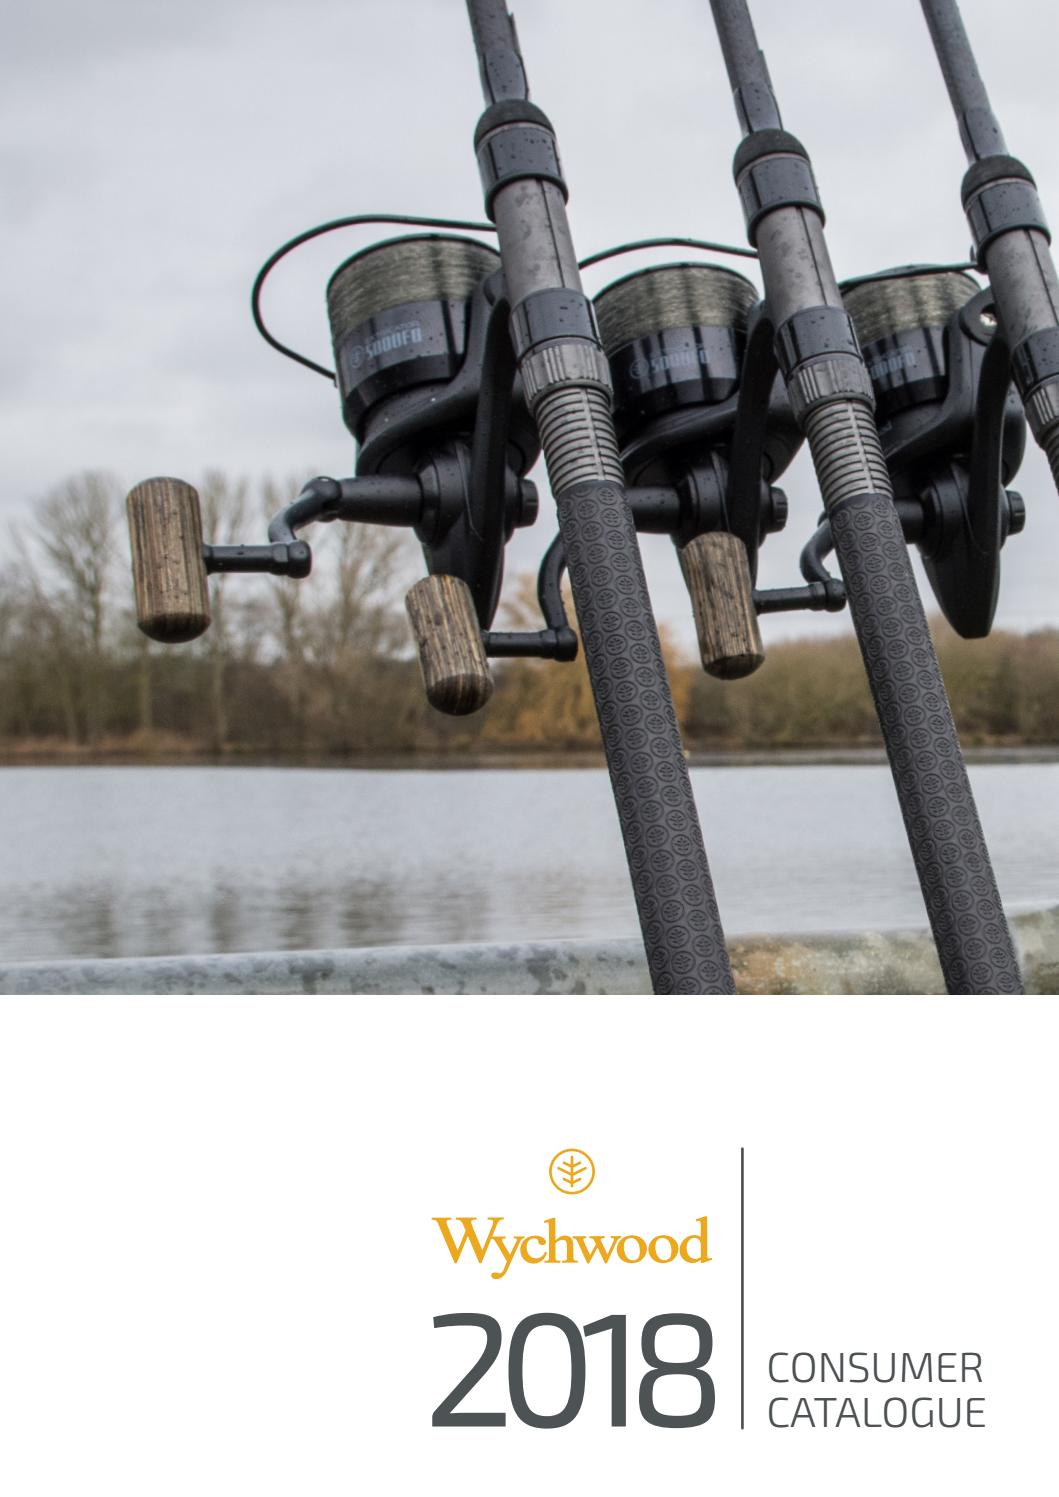 Wychwood Carp Fishing NEW Tactical Stove